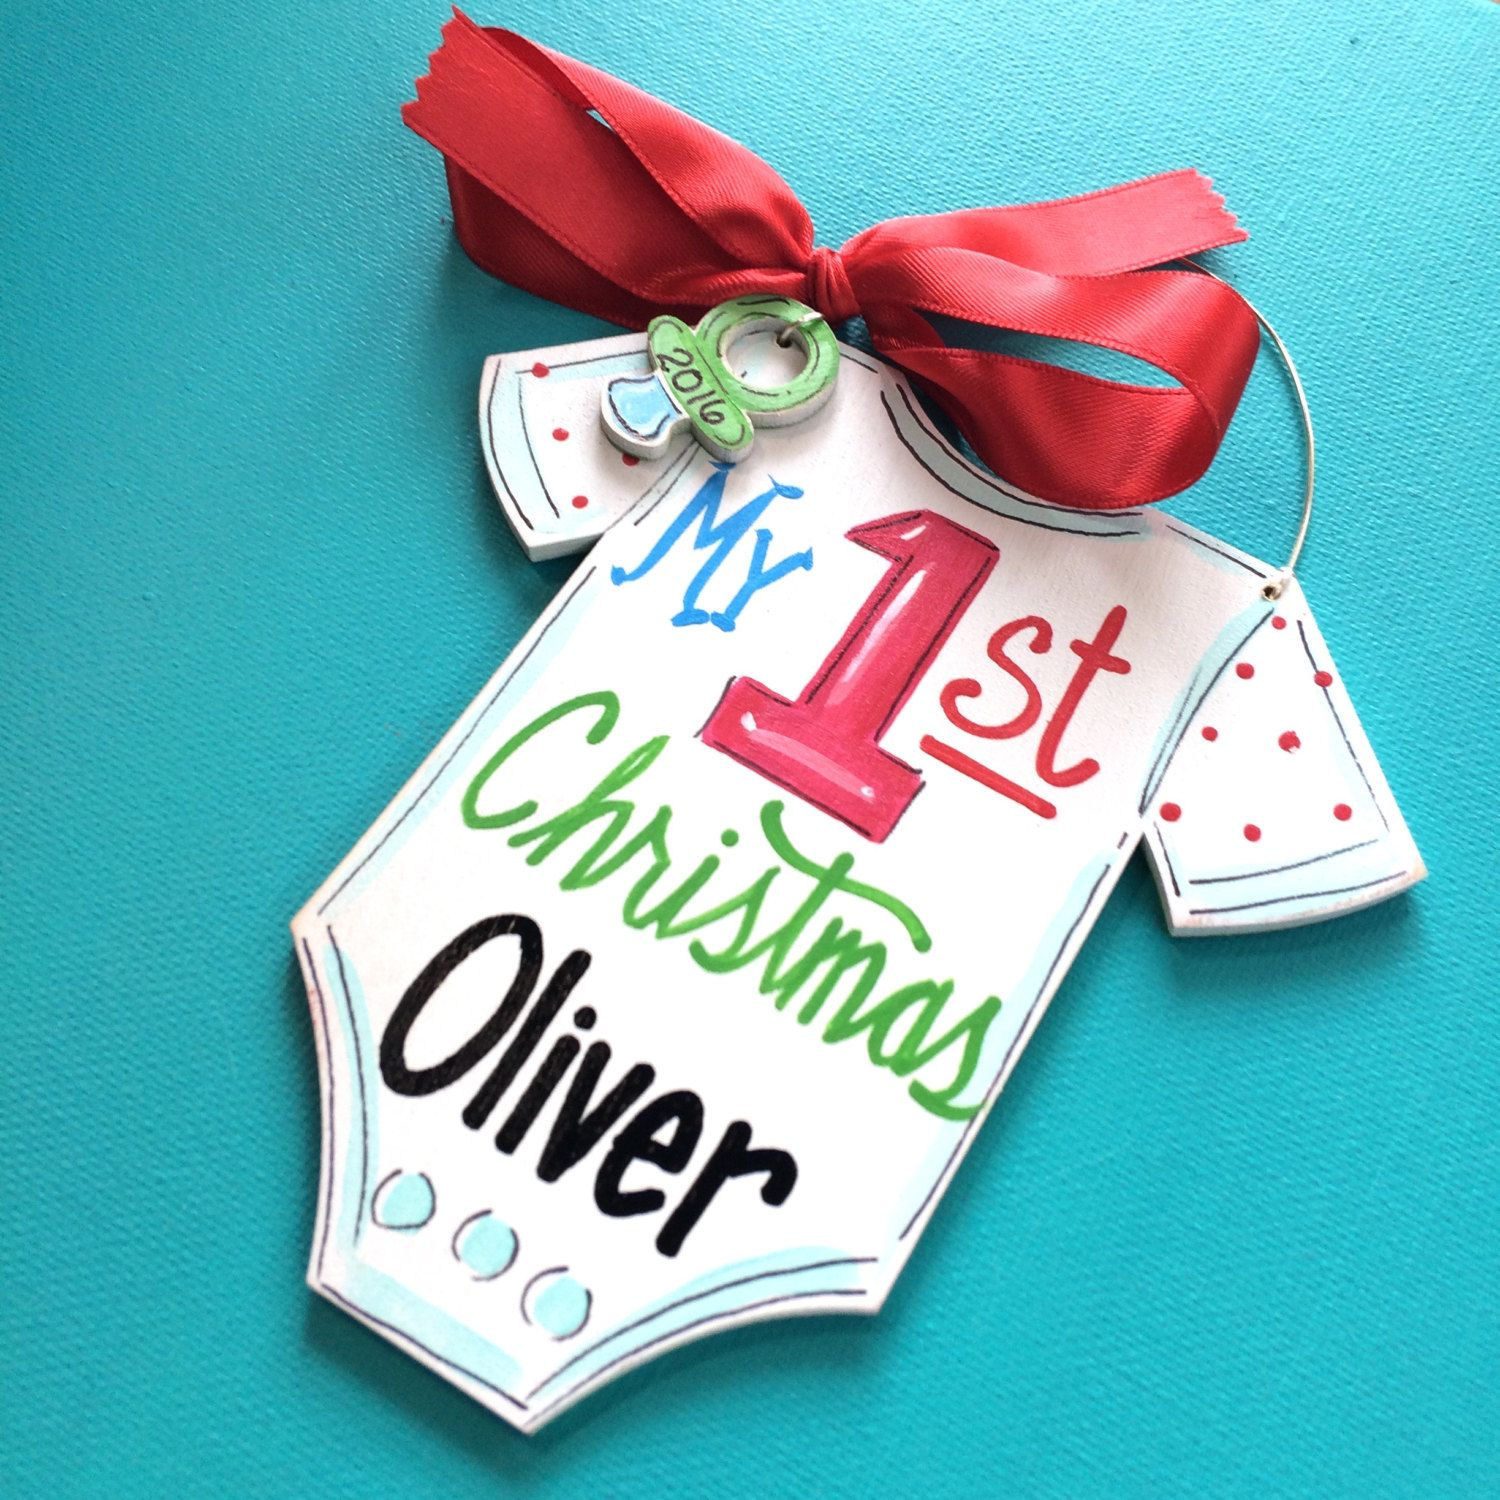 New baby ornaments - My First Christmas Ornament Personalized Ornament Painted Ornament For Baby Pacifier Baby